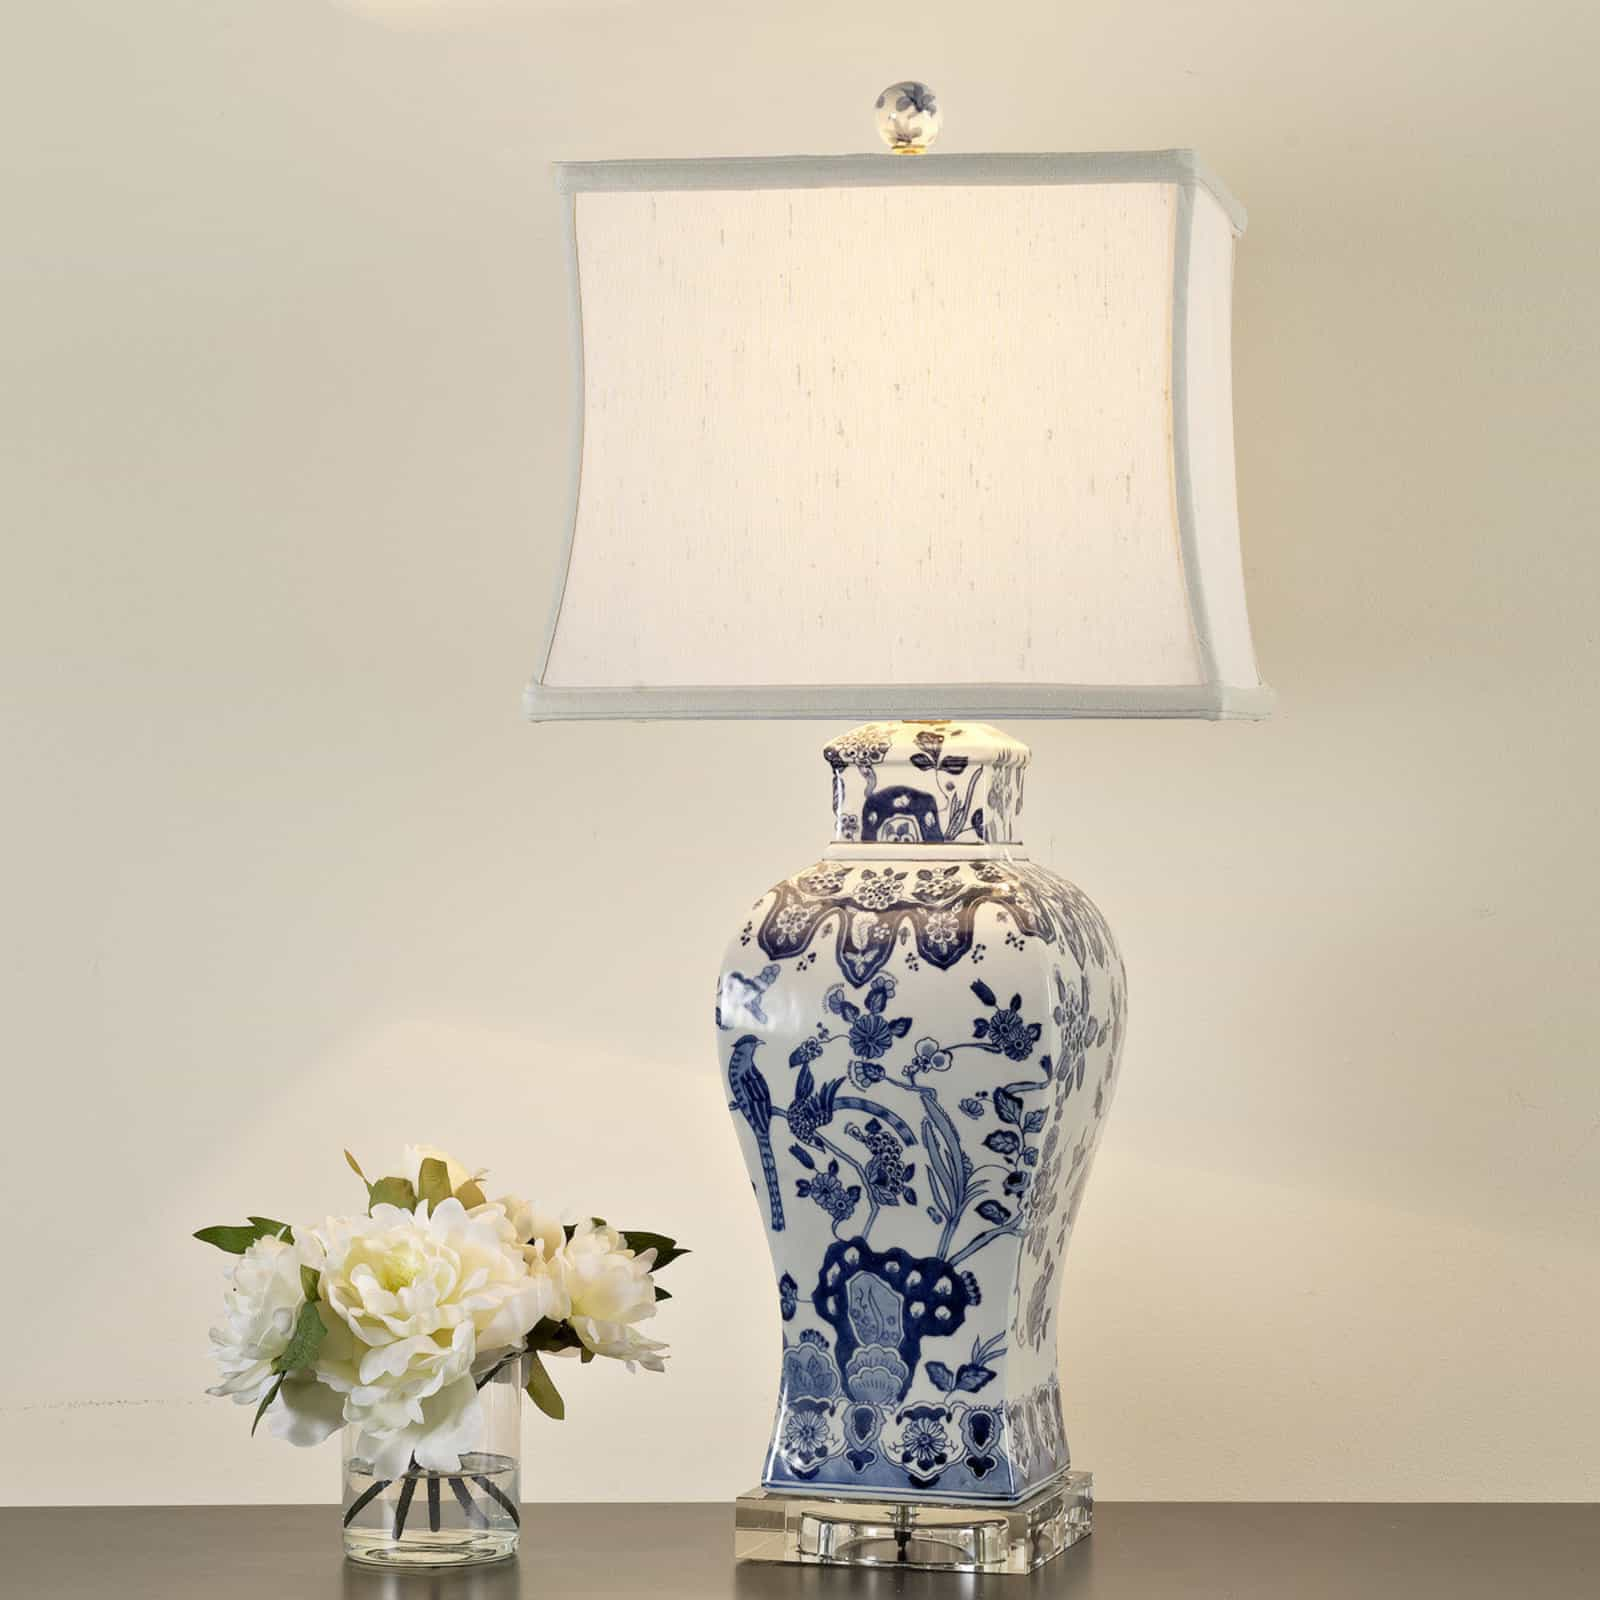 Square Vase Blue And White Floral Table Lamp (#5 of 5)